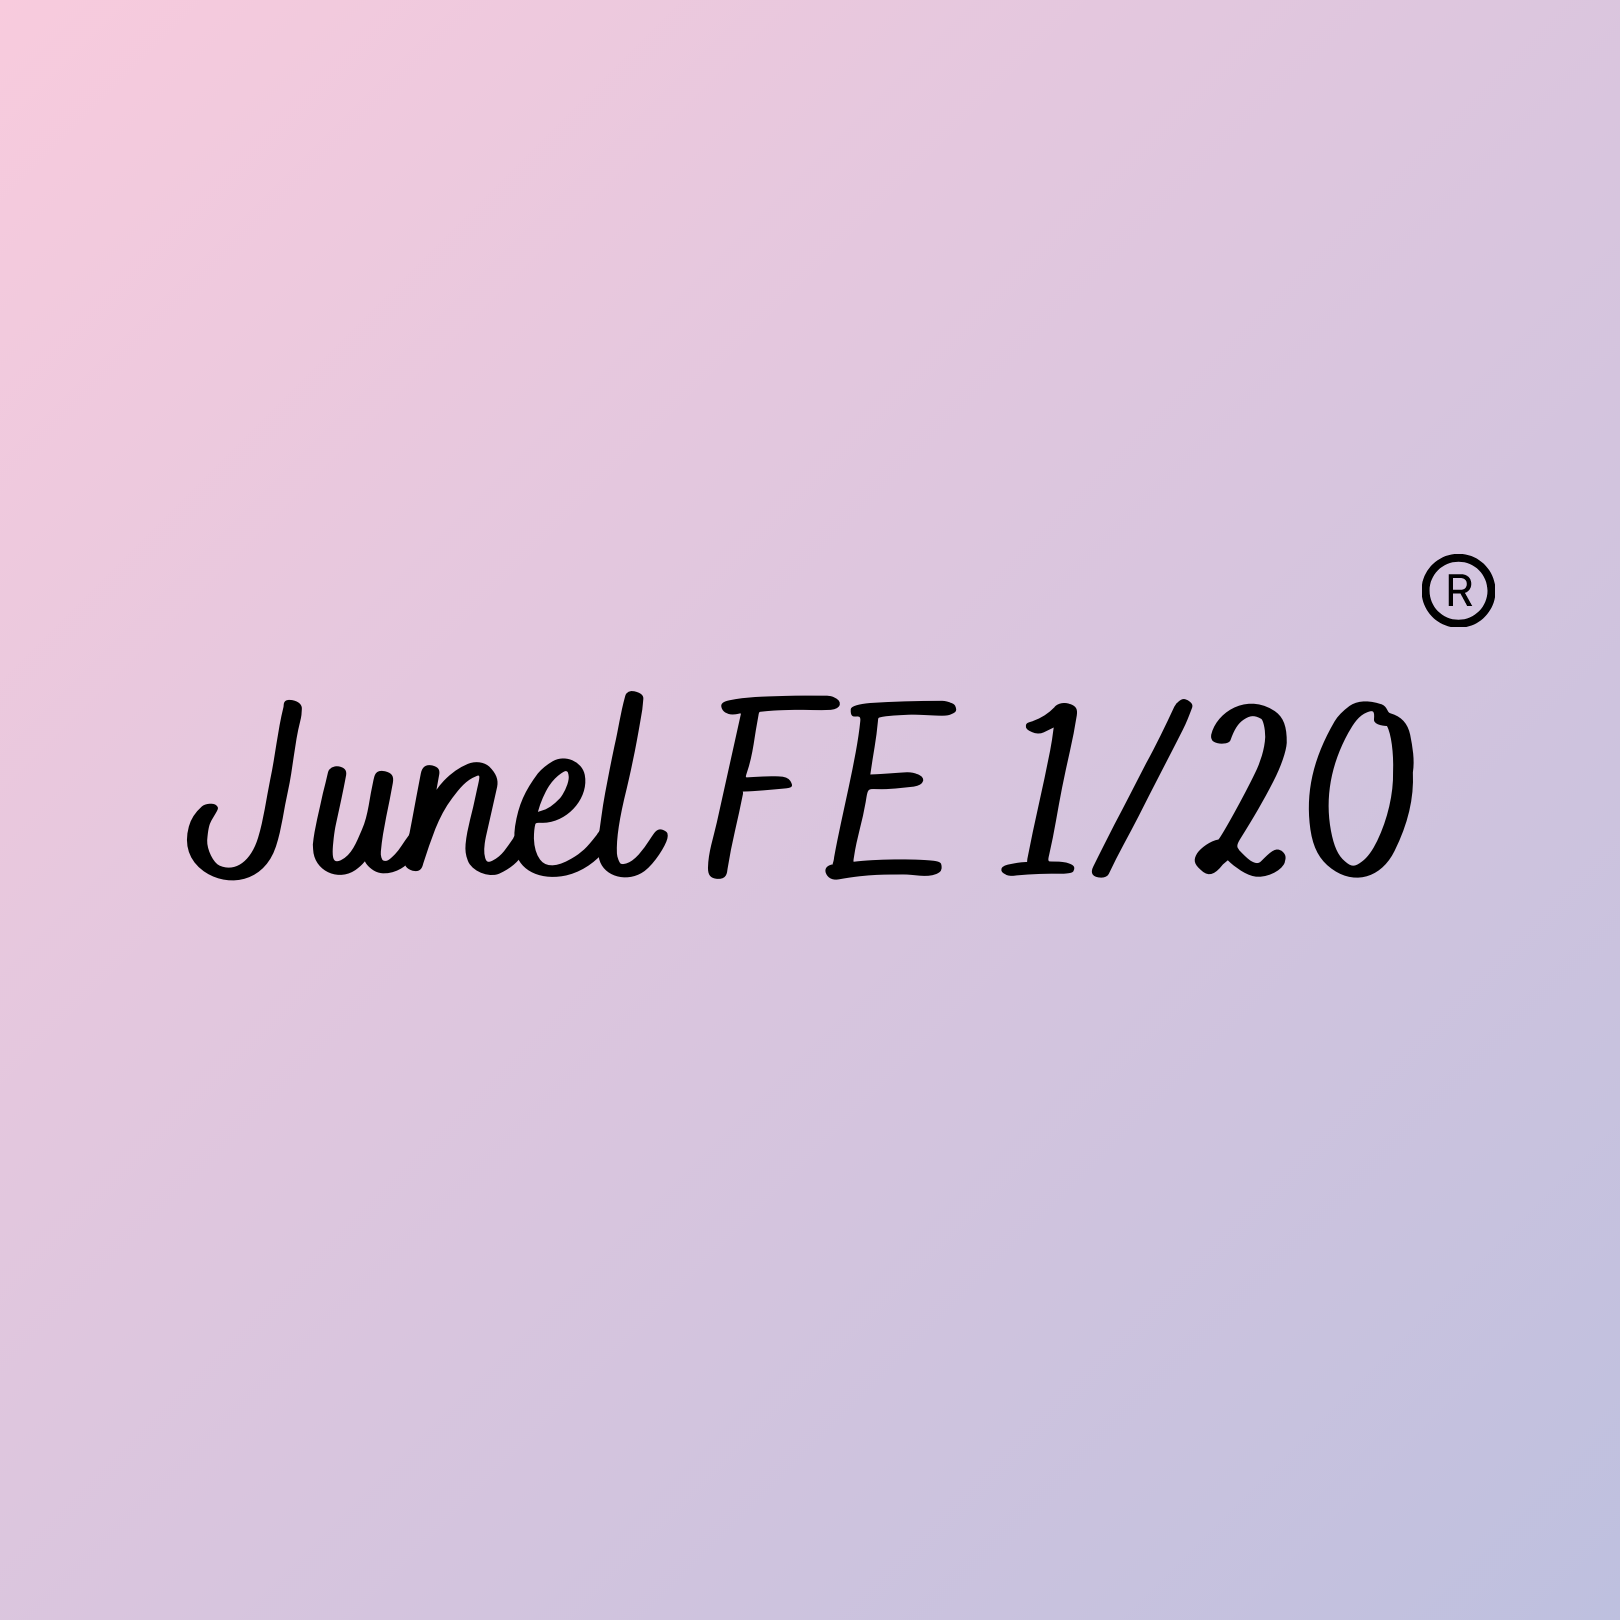 Buy Junel FE 1/20 Birth Control at hellowisp.com